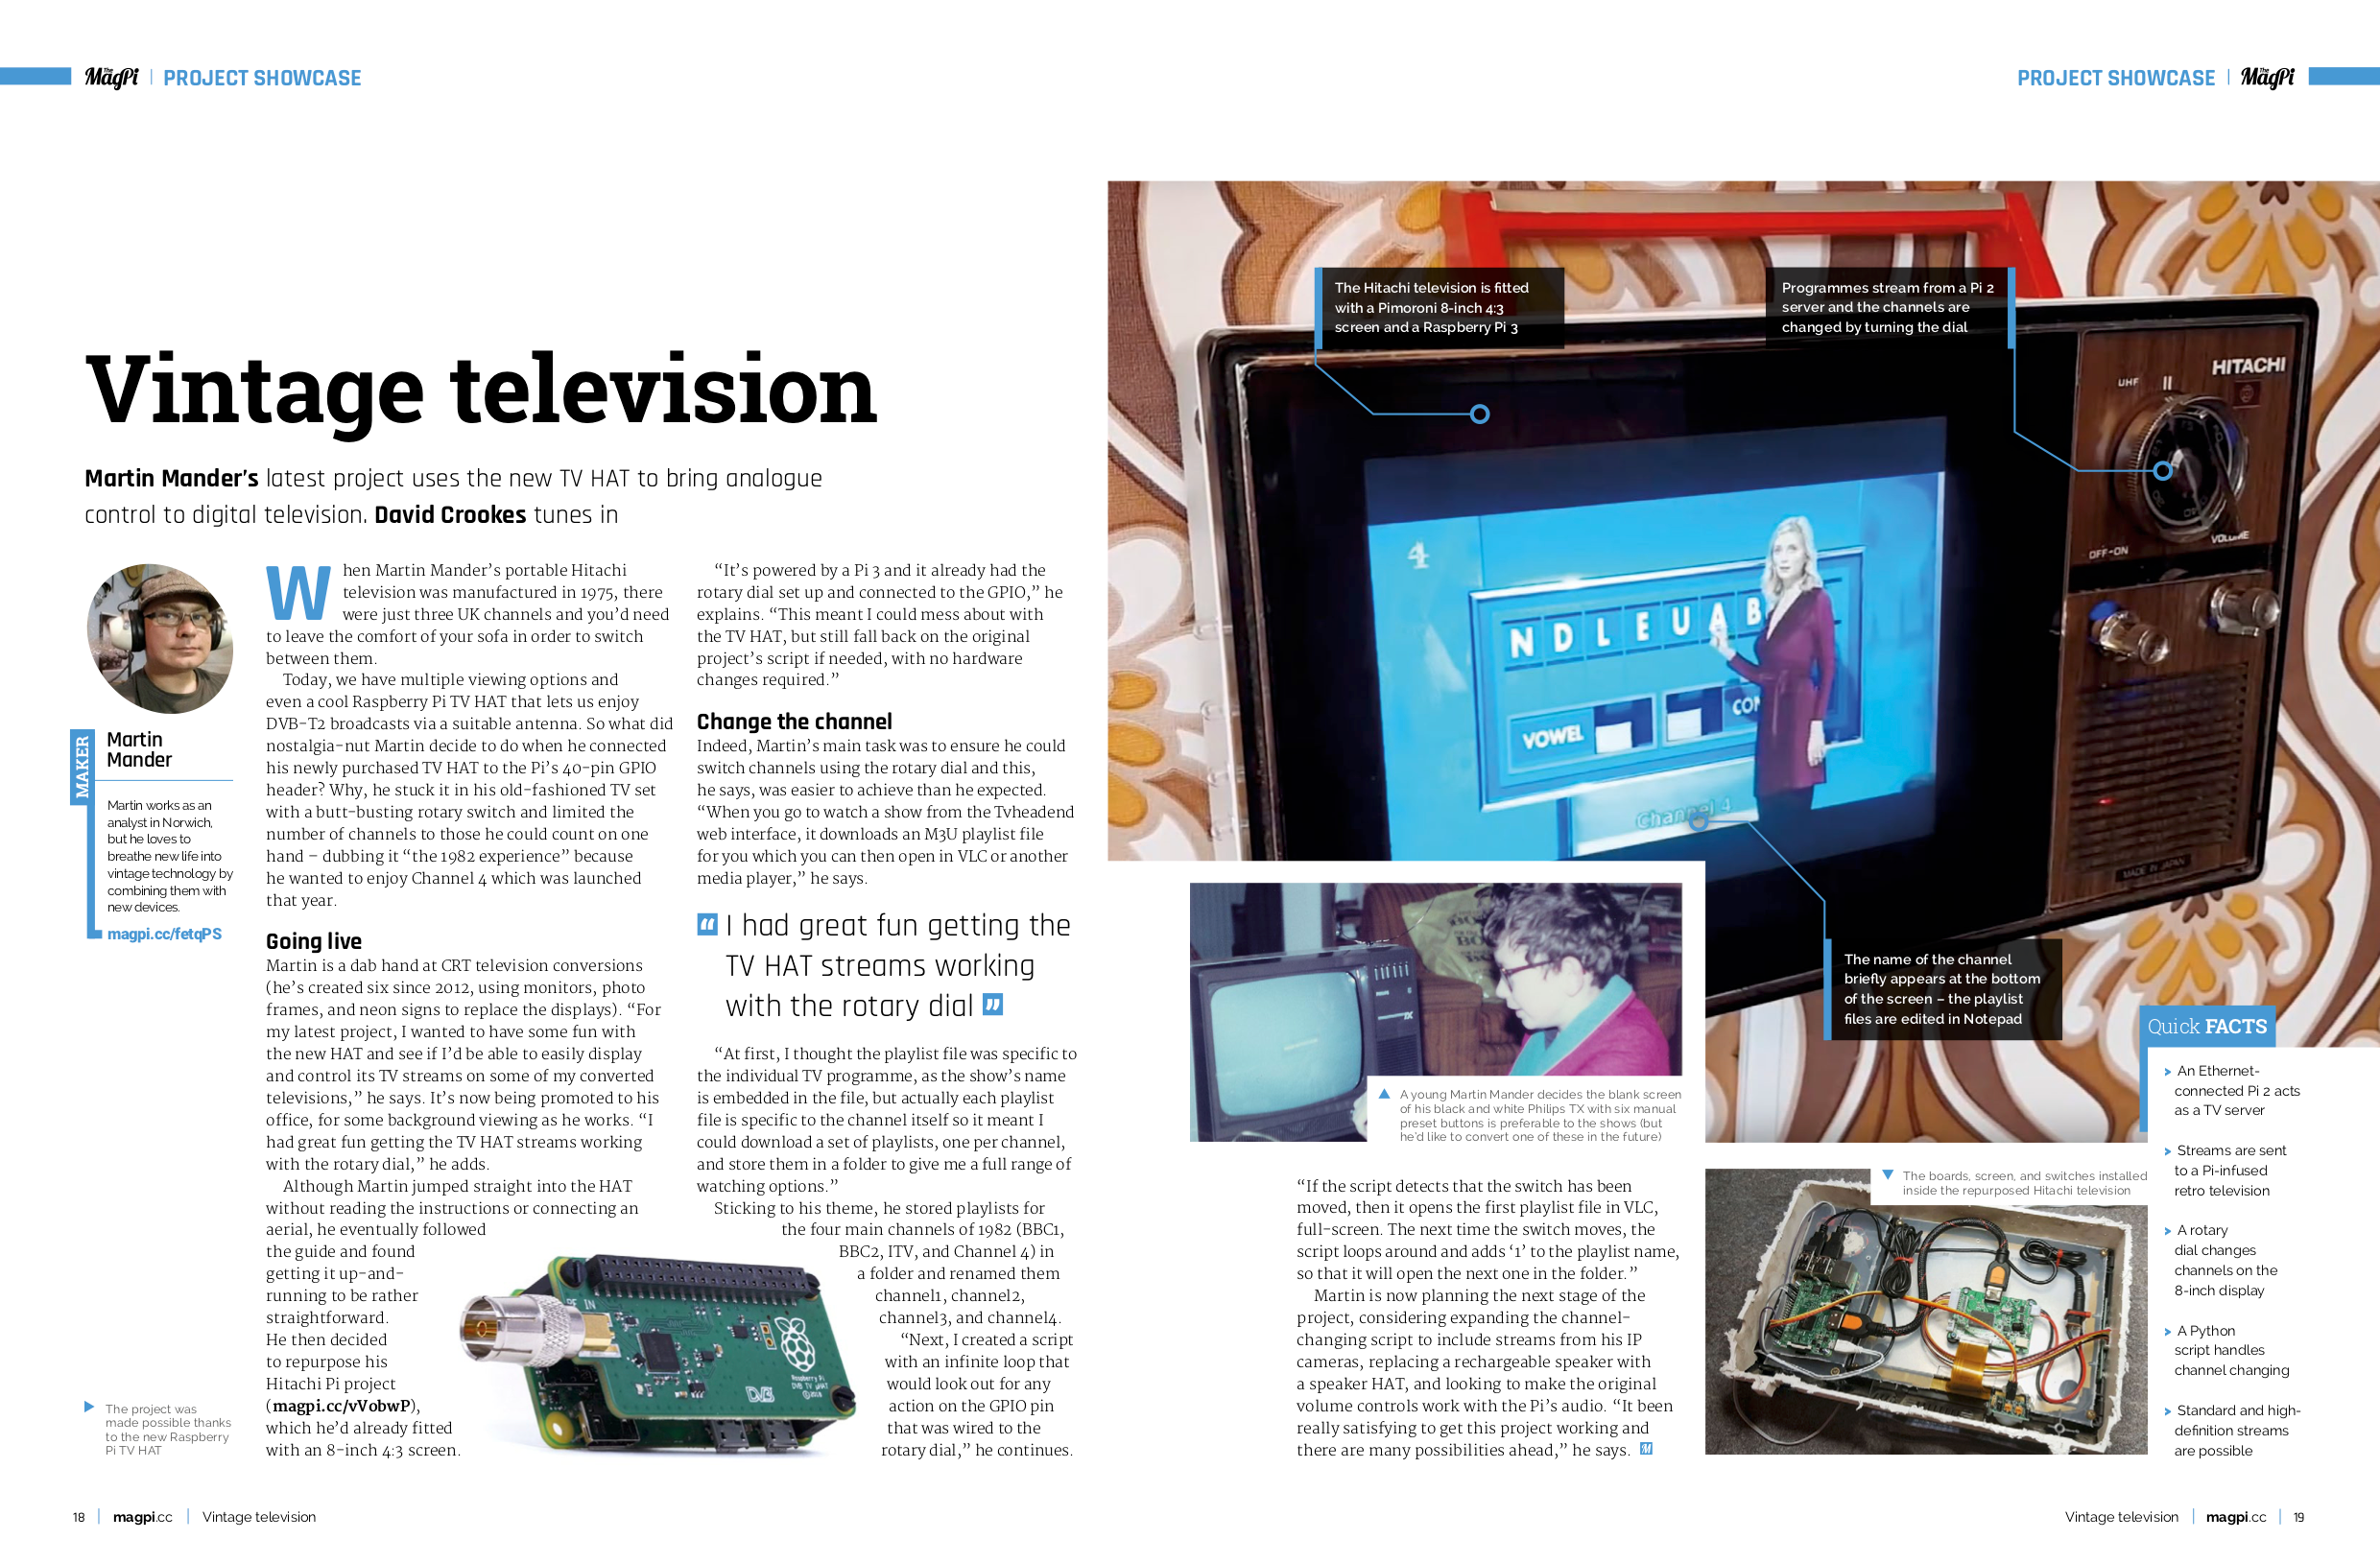 A page layout of the upcycled vintage television project using the Raspberry Pi TV HAT from The MagPi issue 78